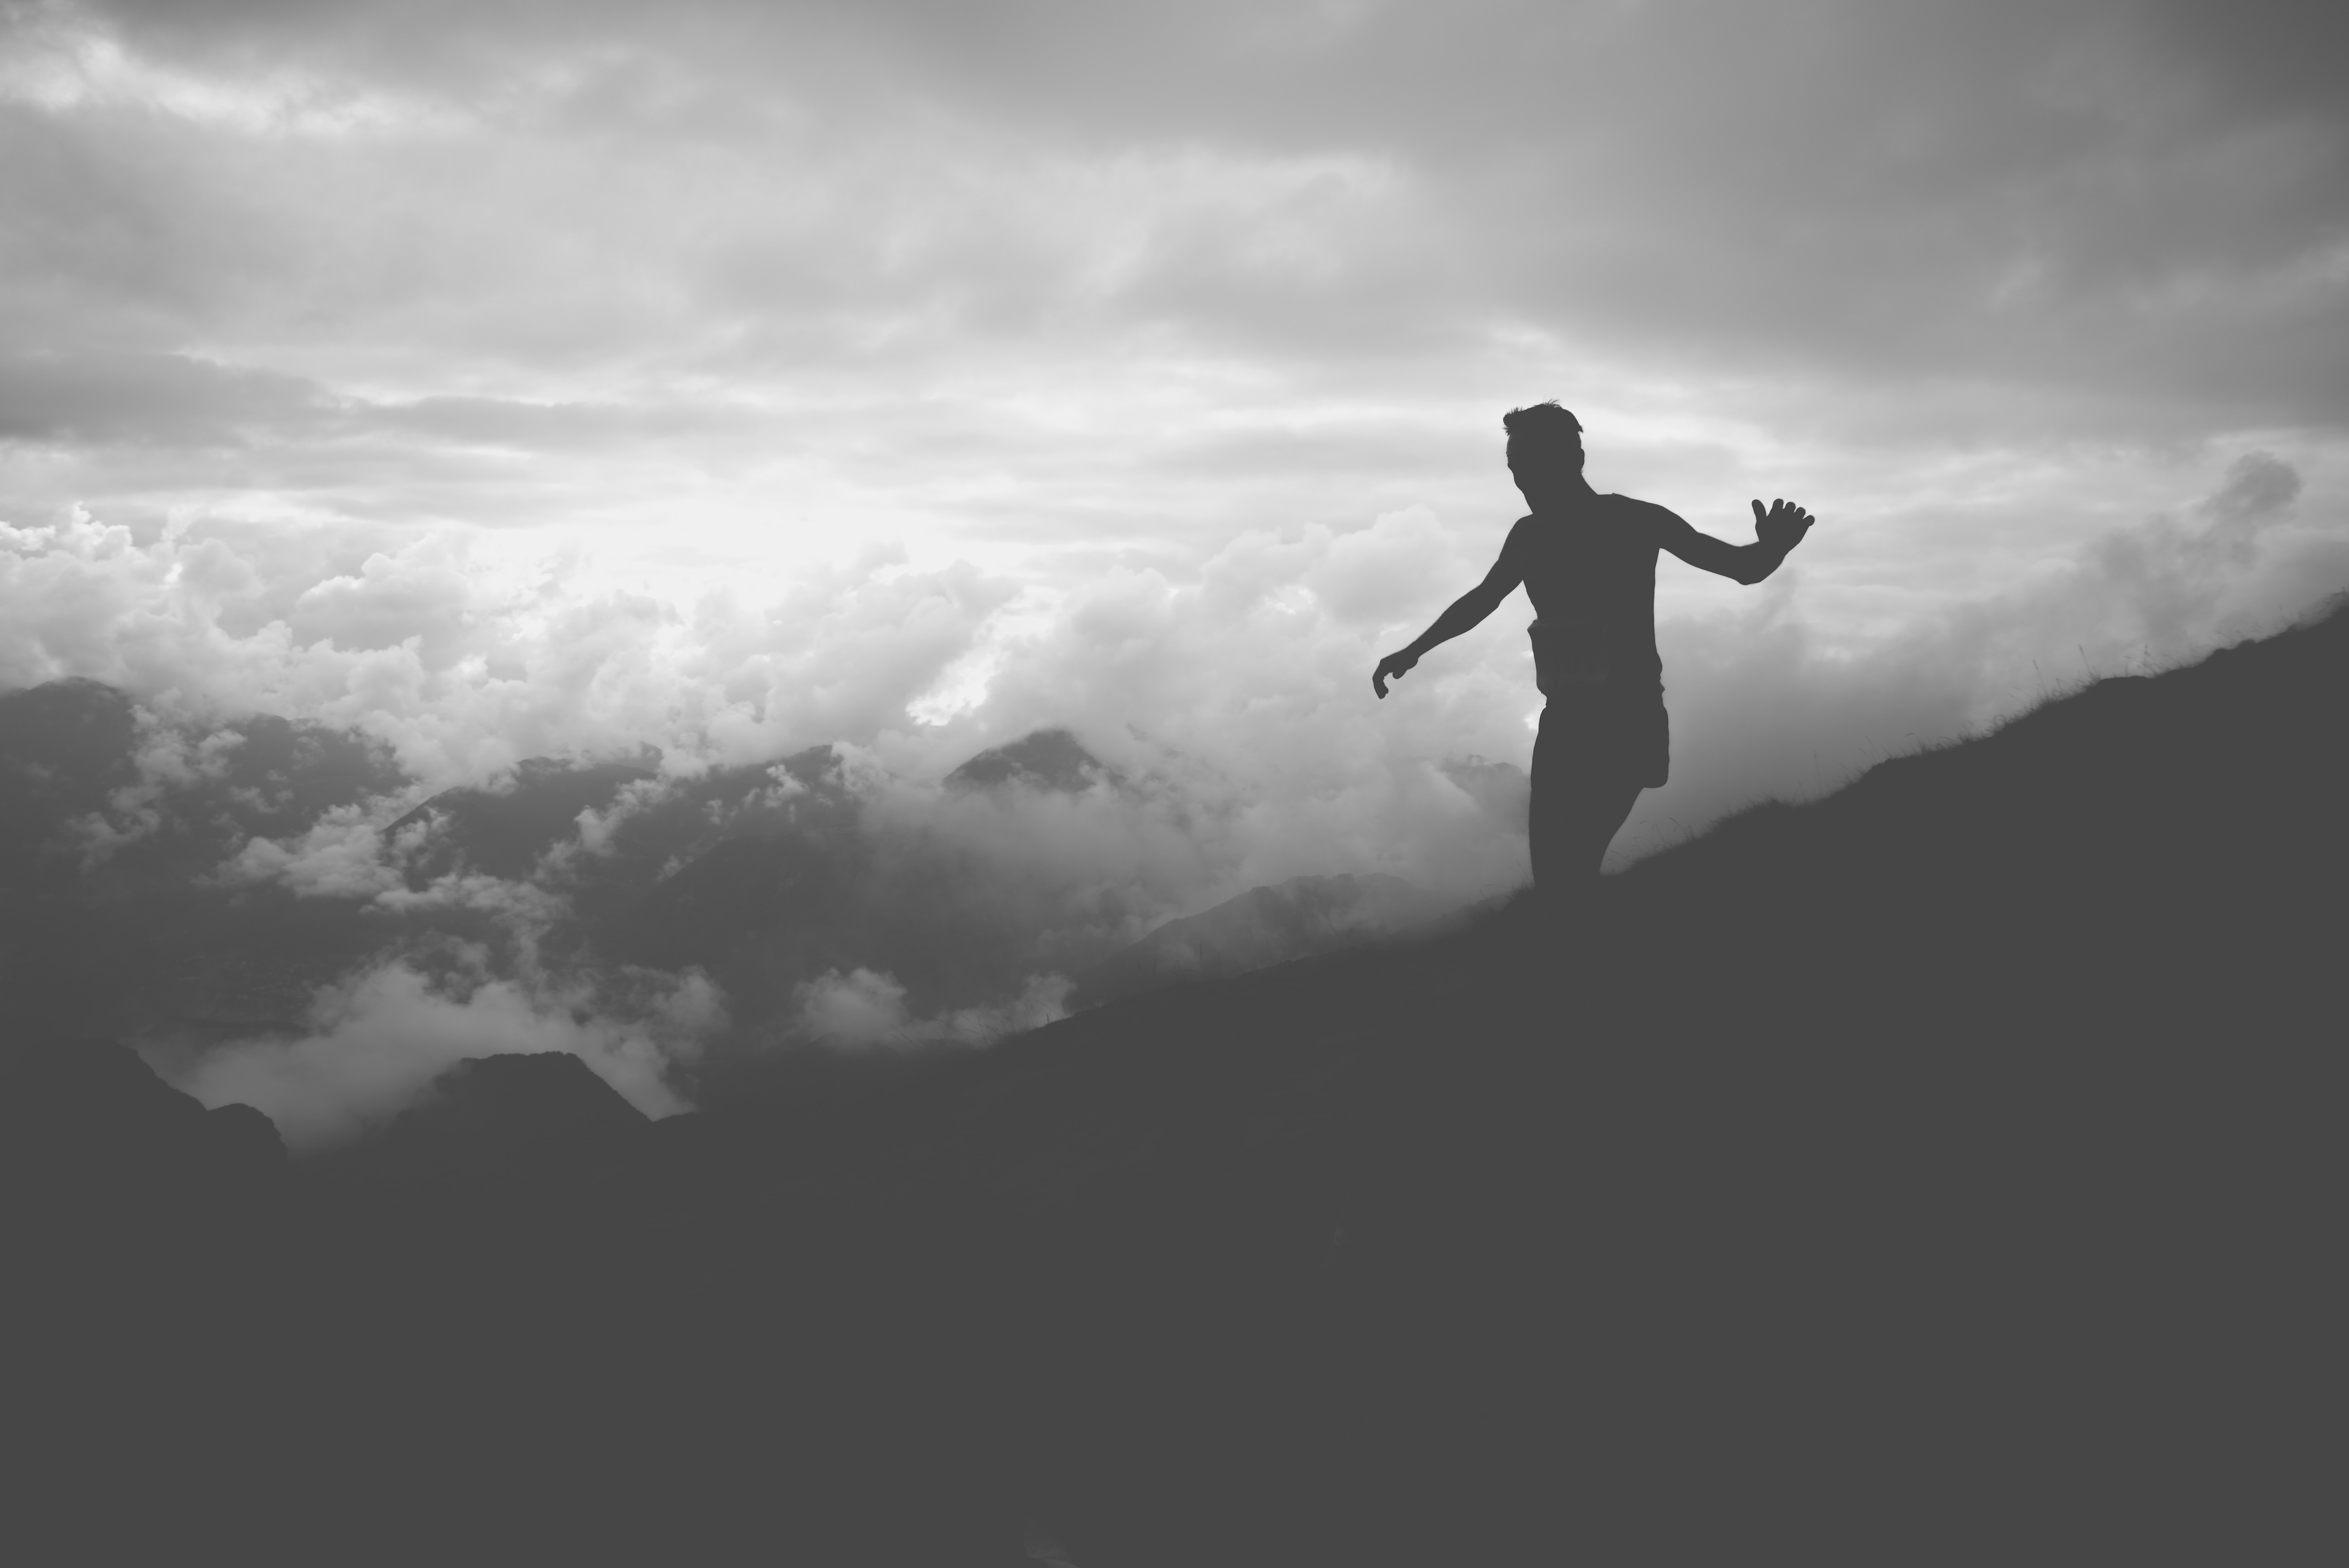 Black and white photo of a silhouette man walking on a hill with a clouded sky in the background